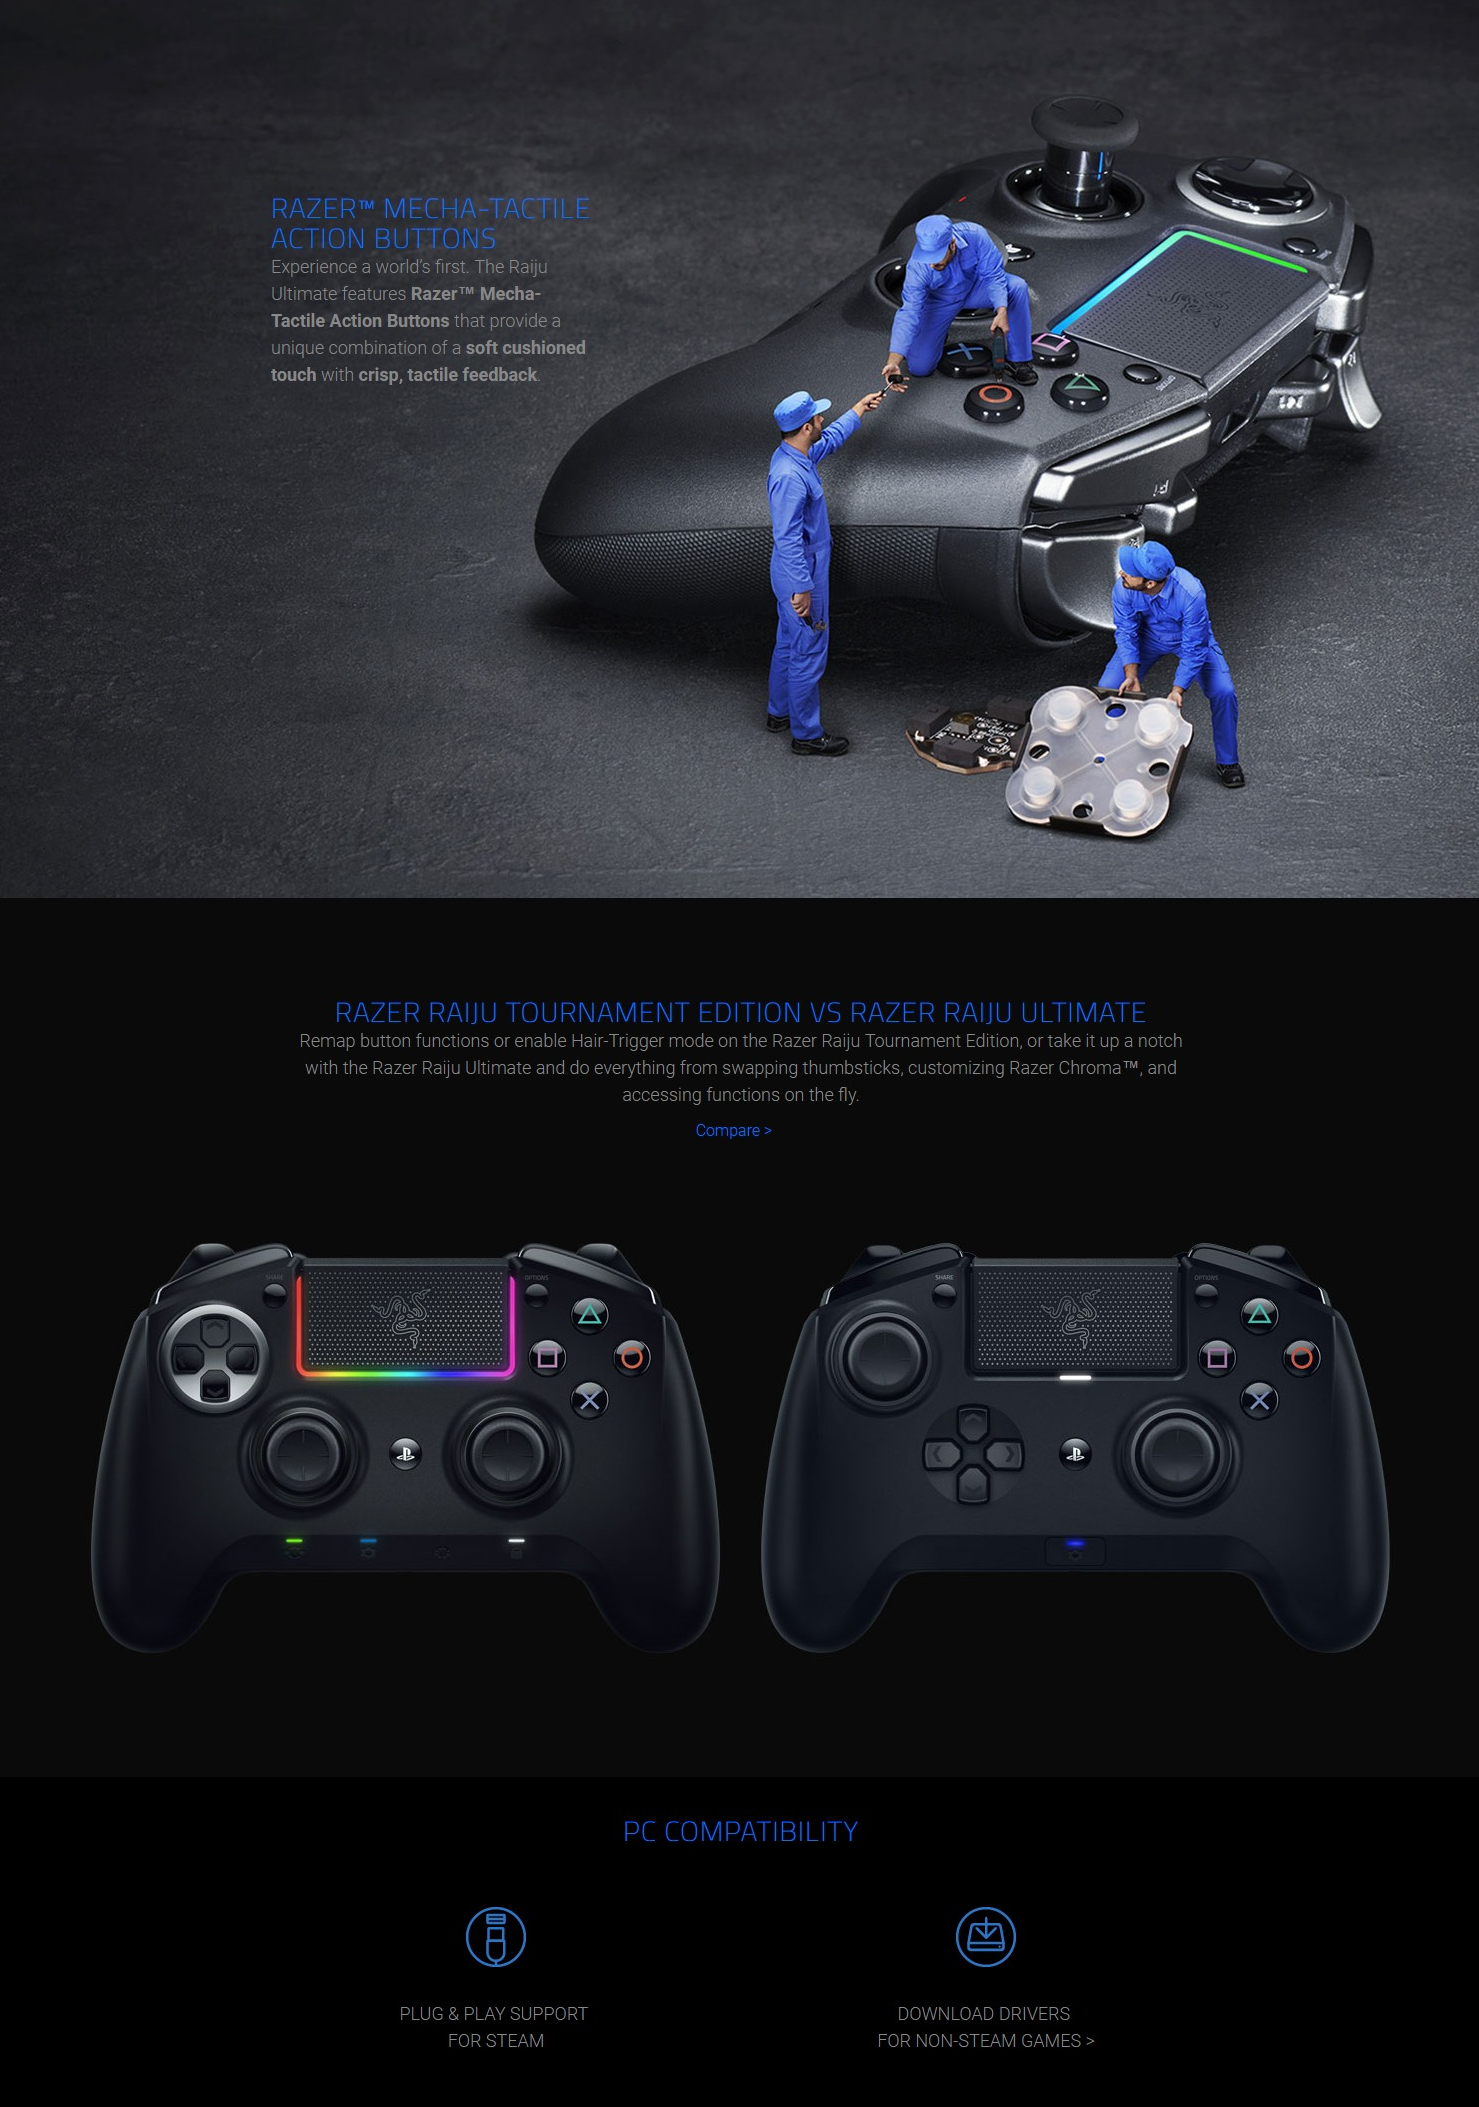 Razer Raiju Ultimate PS4 Controller (Bluetooth/Wired Connection,  Interchangeable Thumbsticks & D-Pad, Chroma, PS4/PC Compatible)